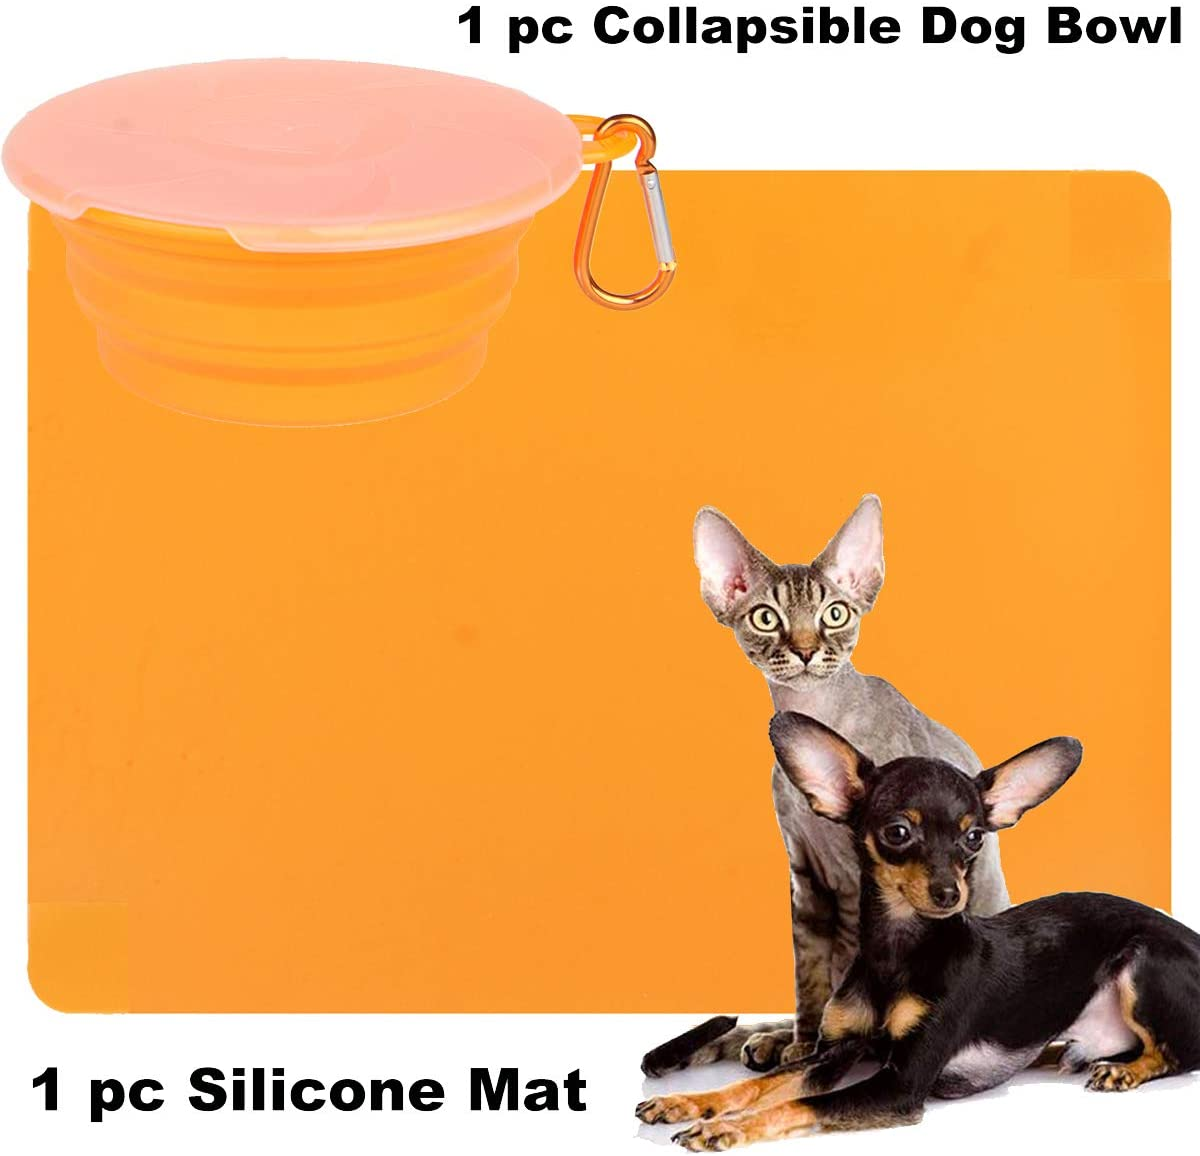 IETANG Ollapsible Pet Dog Dish Bowl with Lid,Dog Silicone Waterproof Placemat Mat, Non-Skid Spill Proof Pet Feeding Mat for Dog Water Feeding Portable Travel